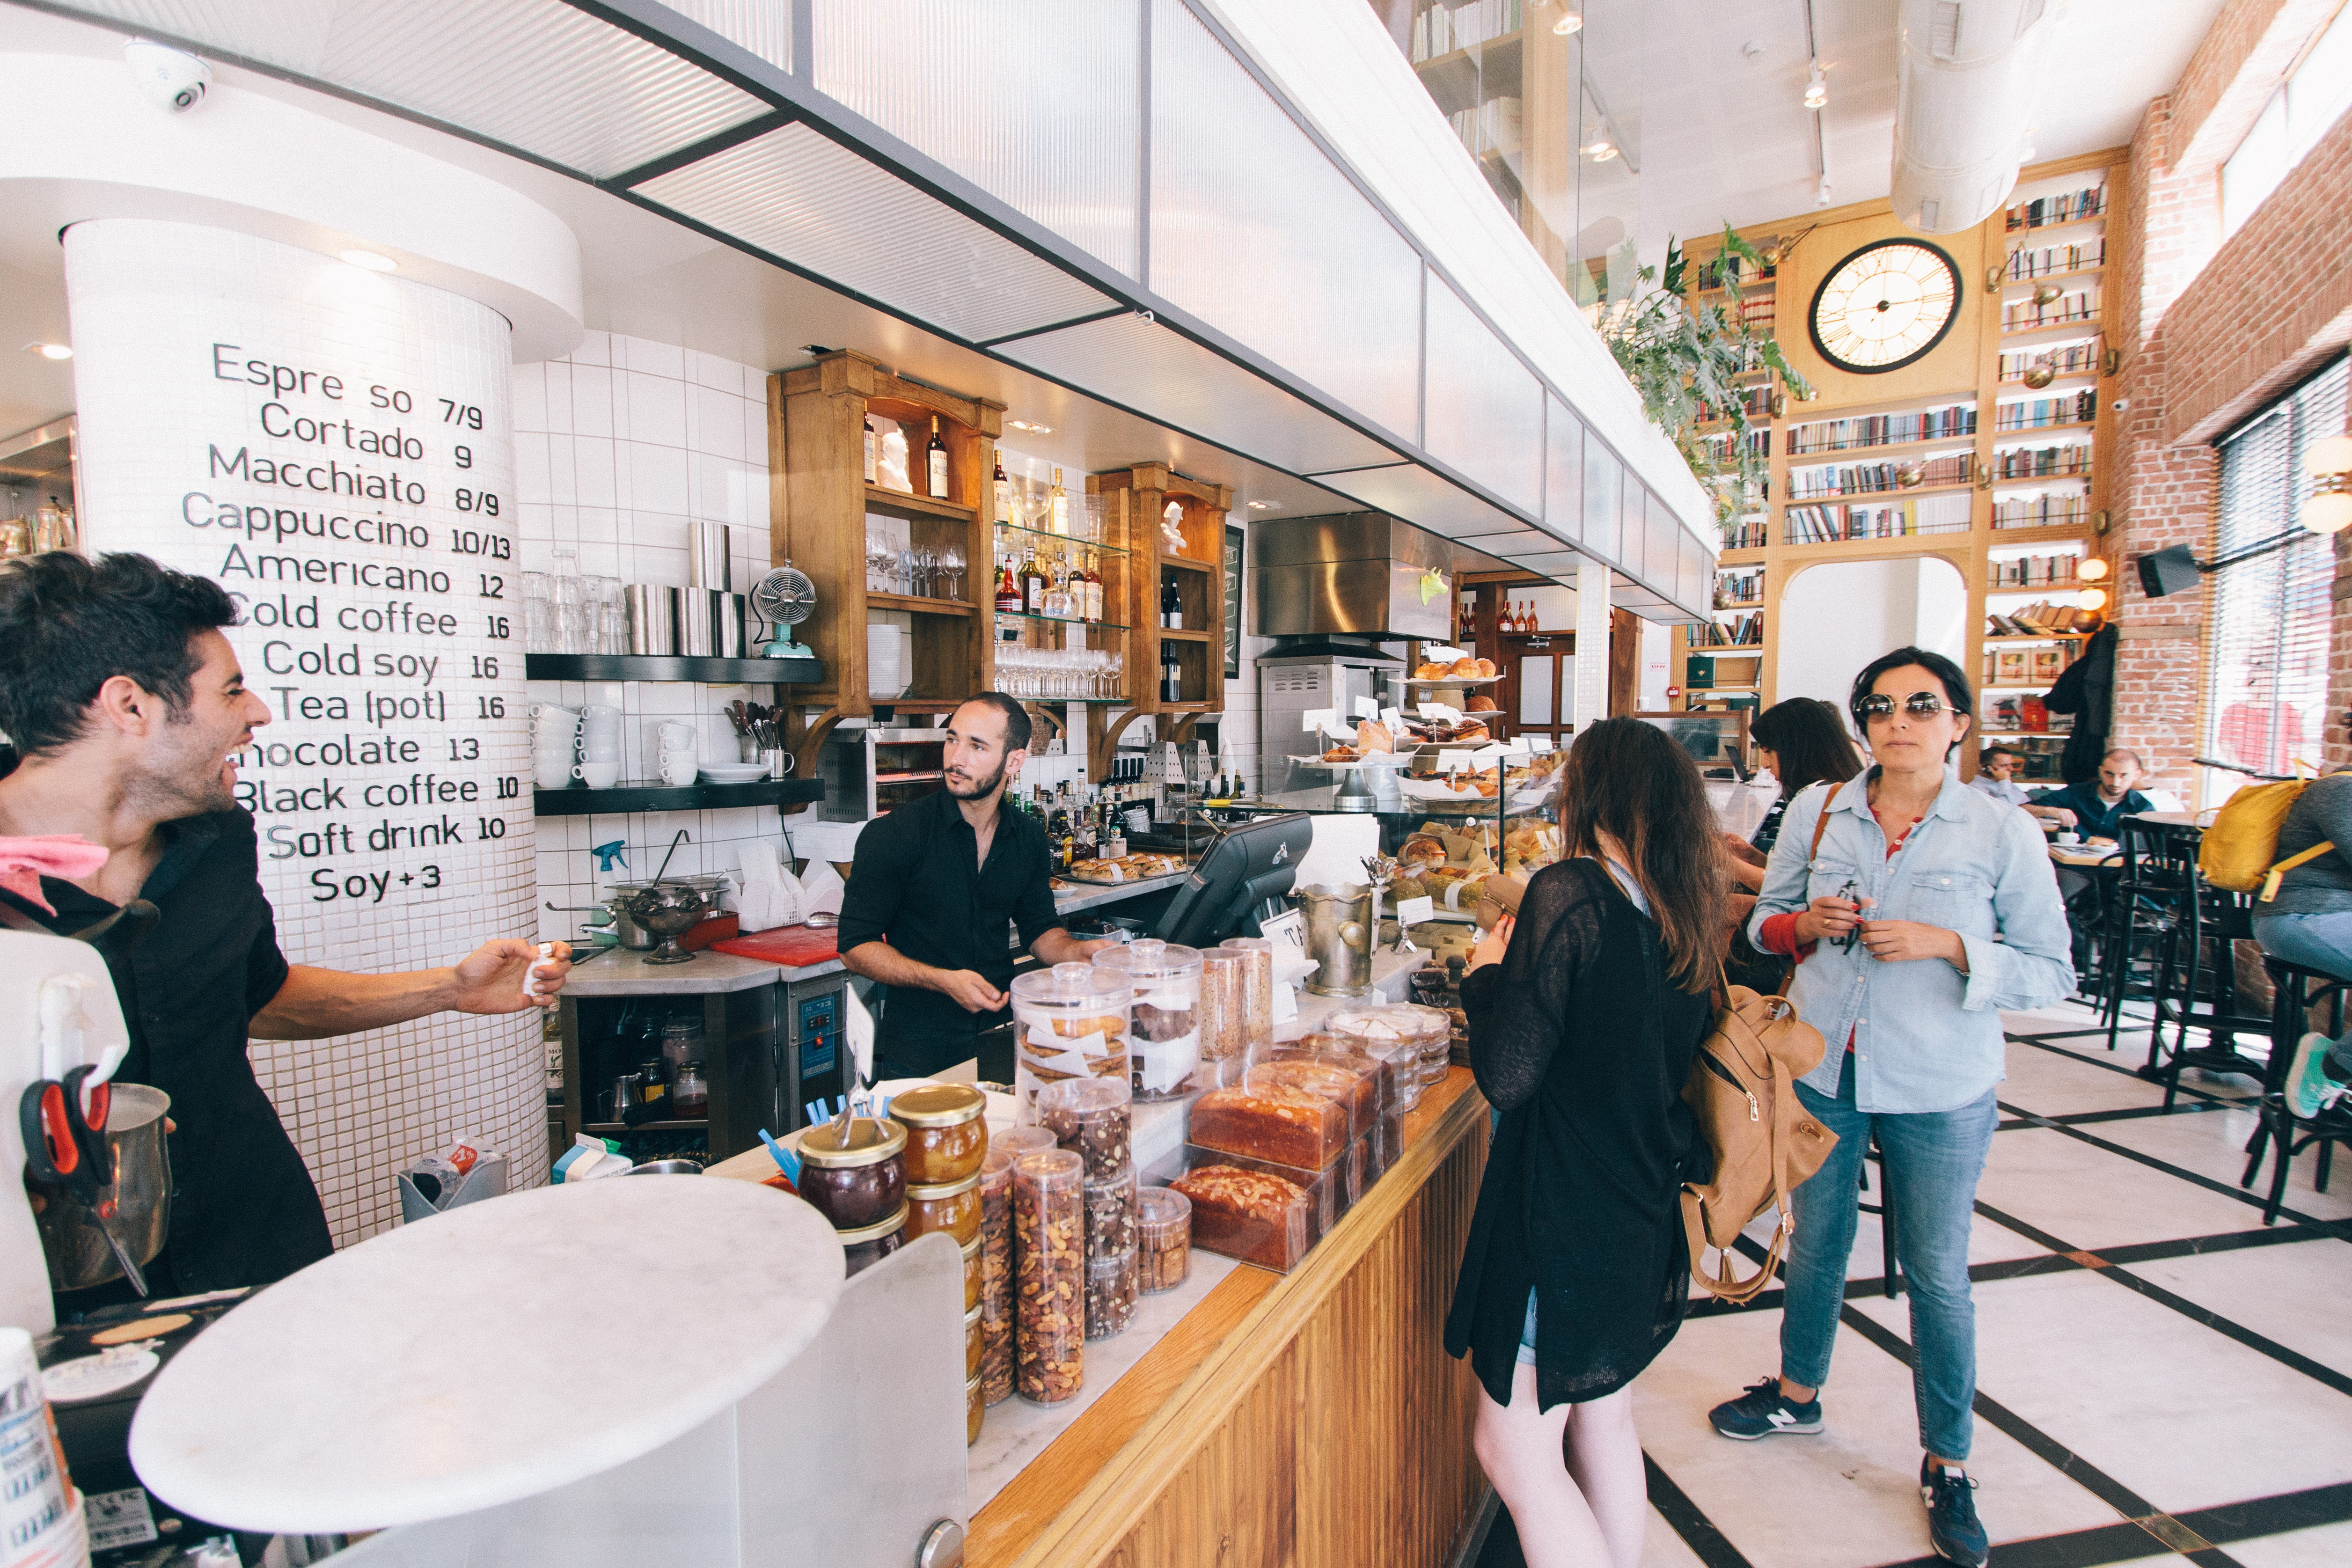 Customers and baristas near the counter in an elegant coffee shop in Tel Aviv